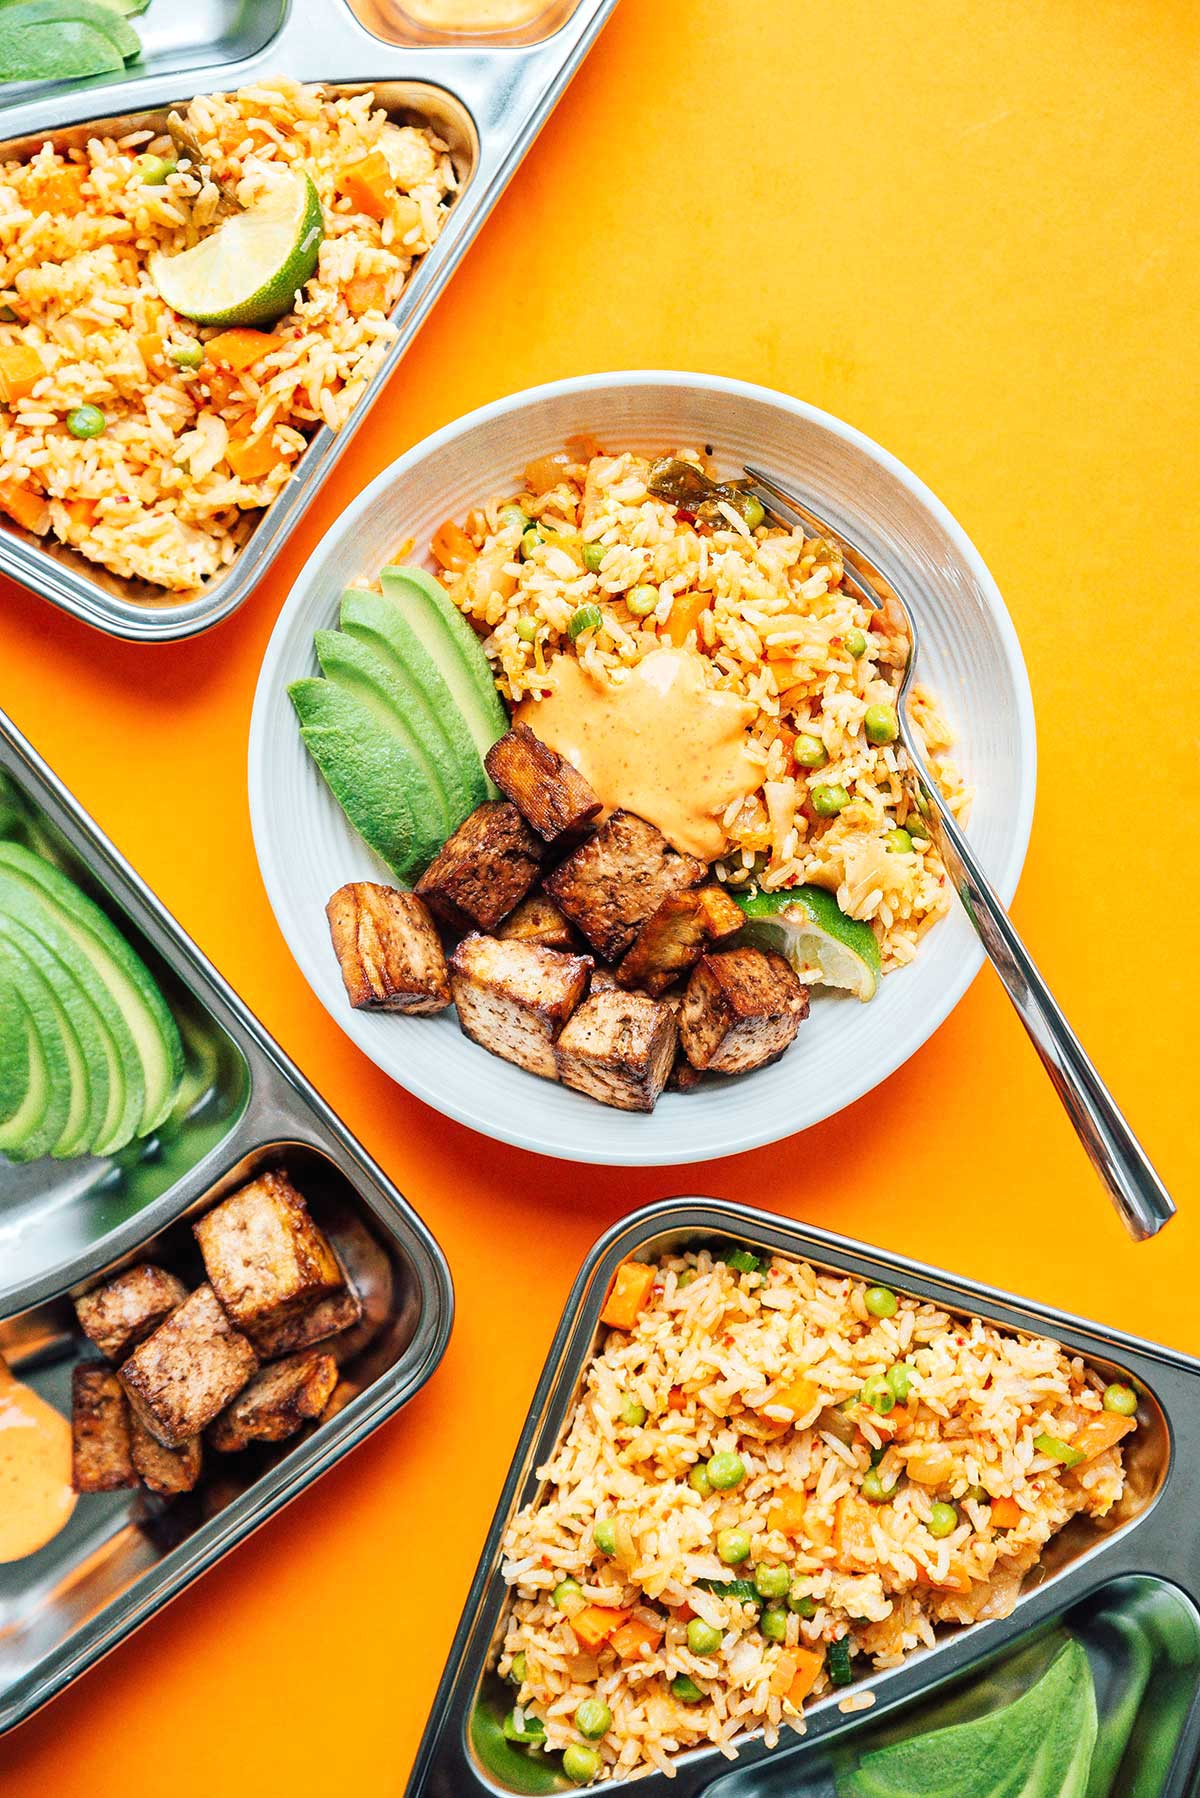 Kimchi fried rice meal prep in various bowls and containers on a yellow background